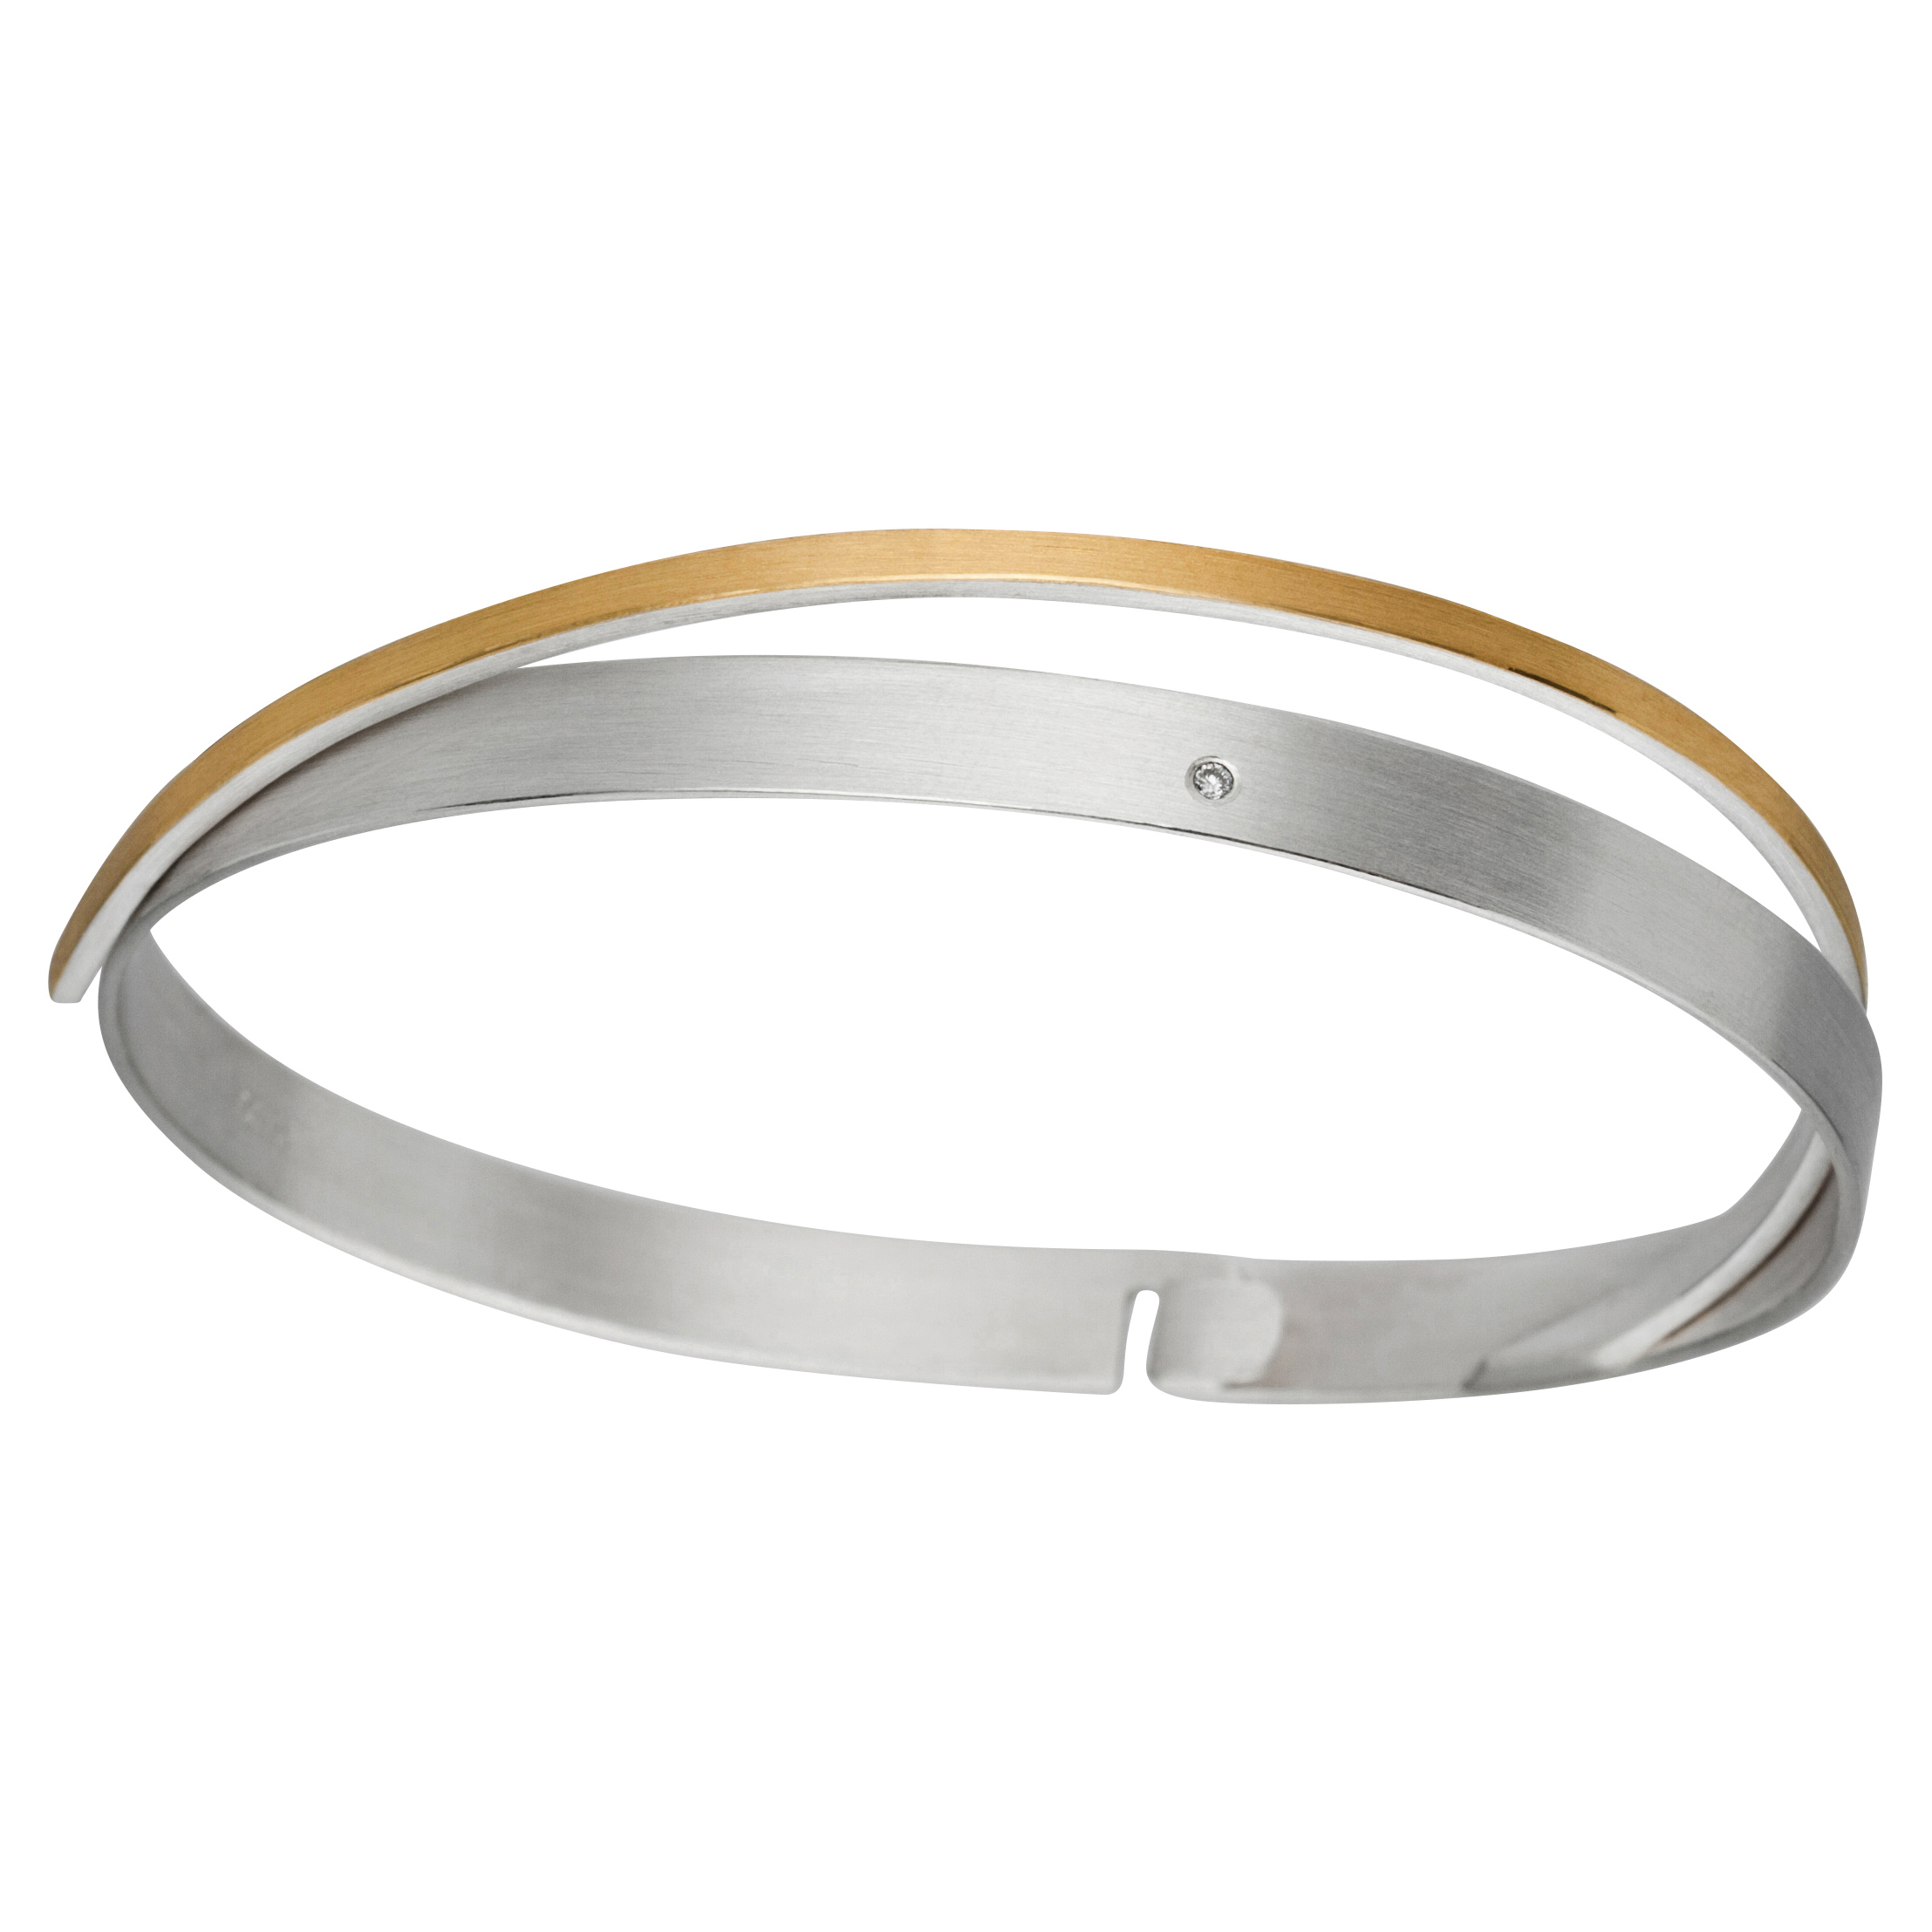 Manu Silver Bracelet With Gold Band